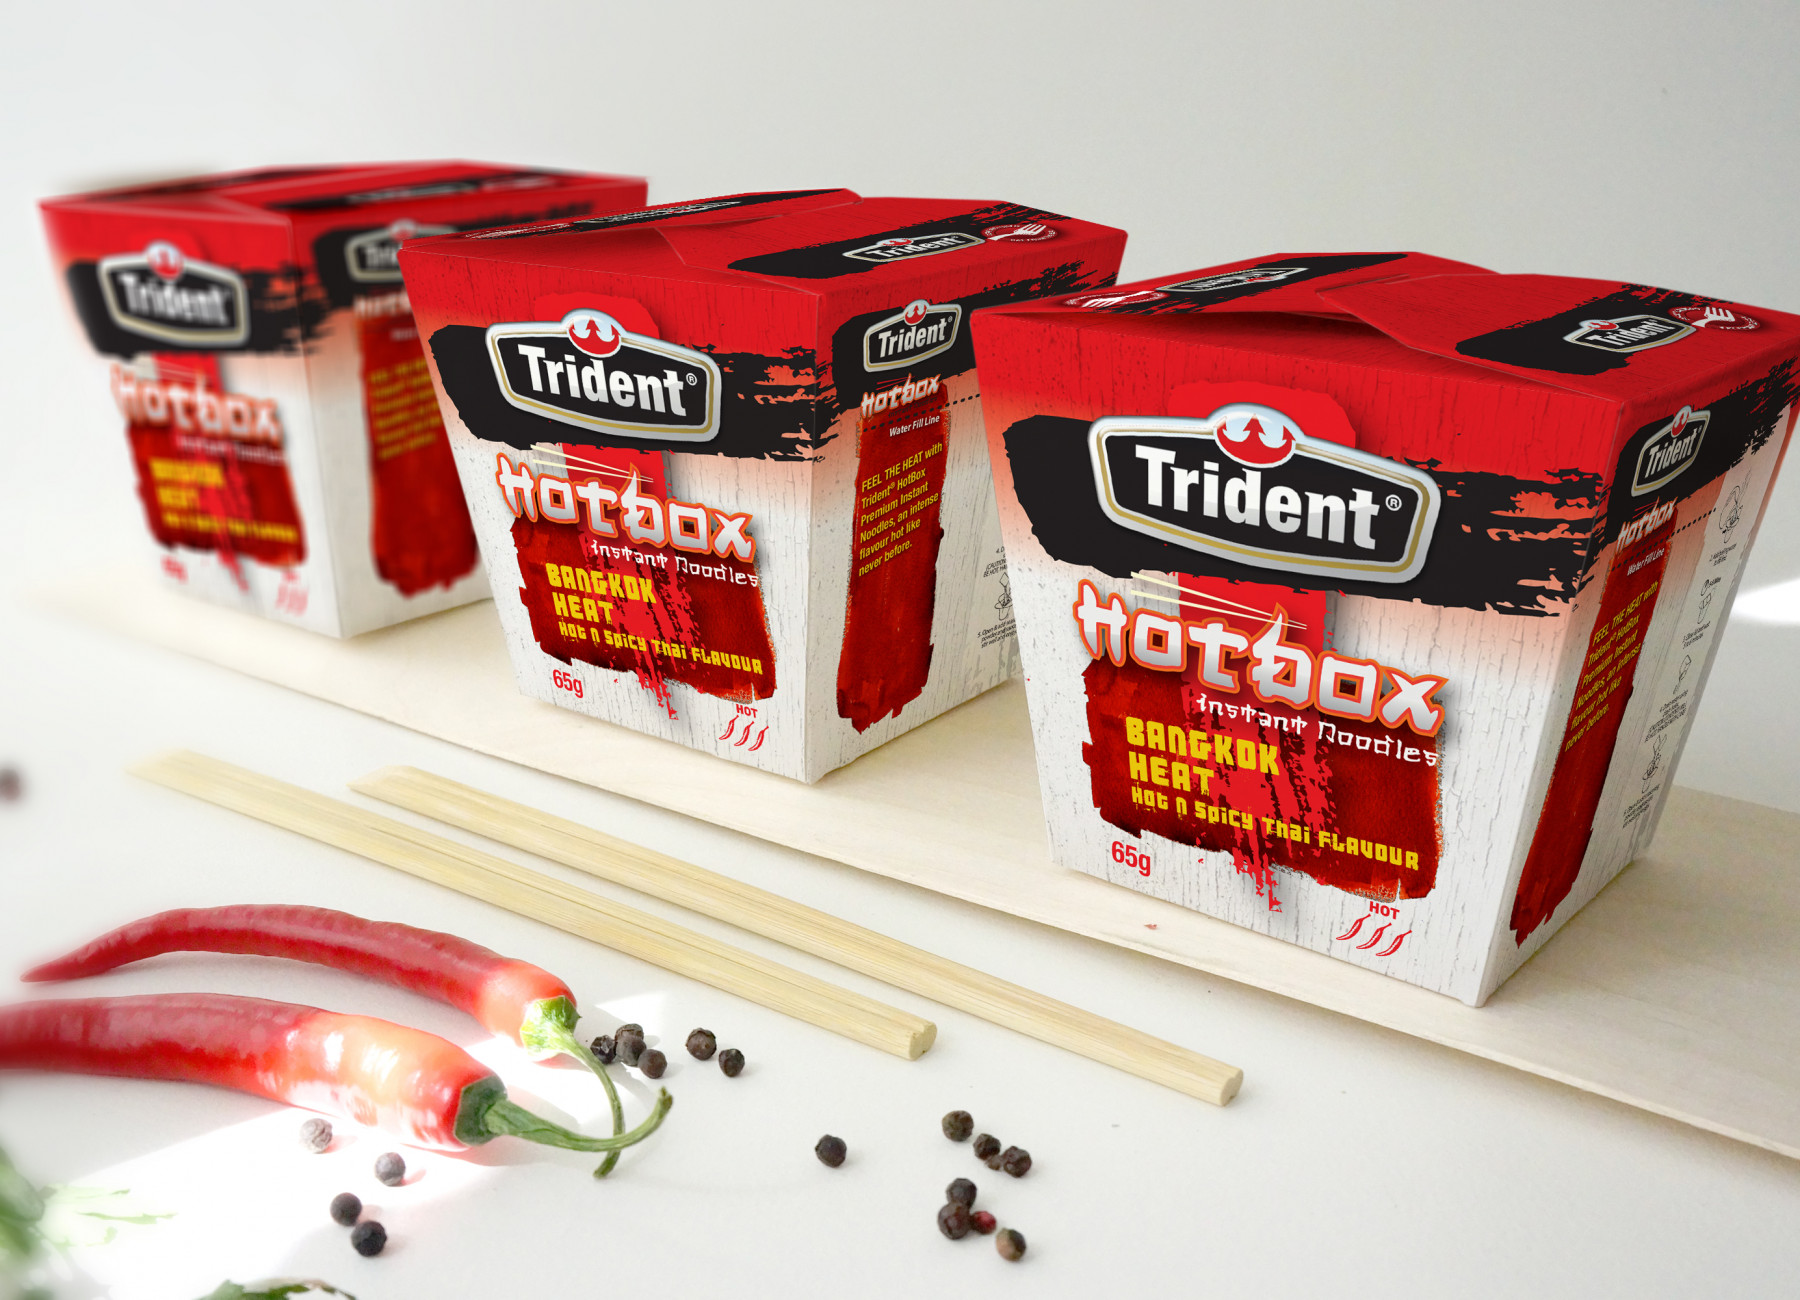 Trident Hotbox 03 Noodle Box